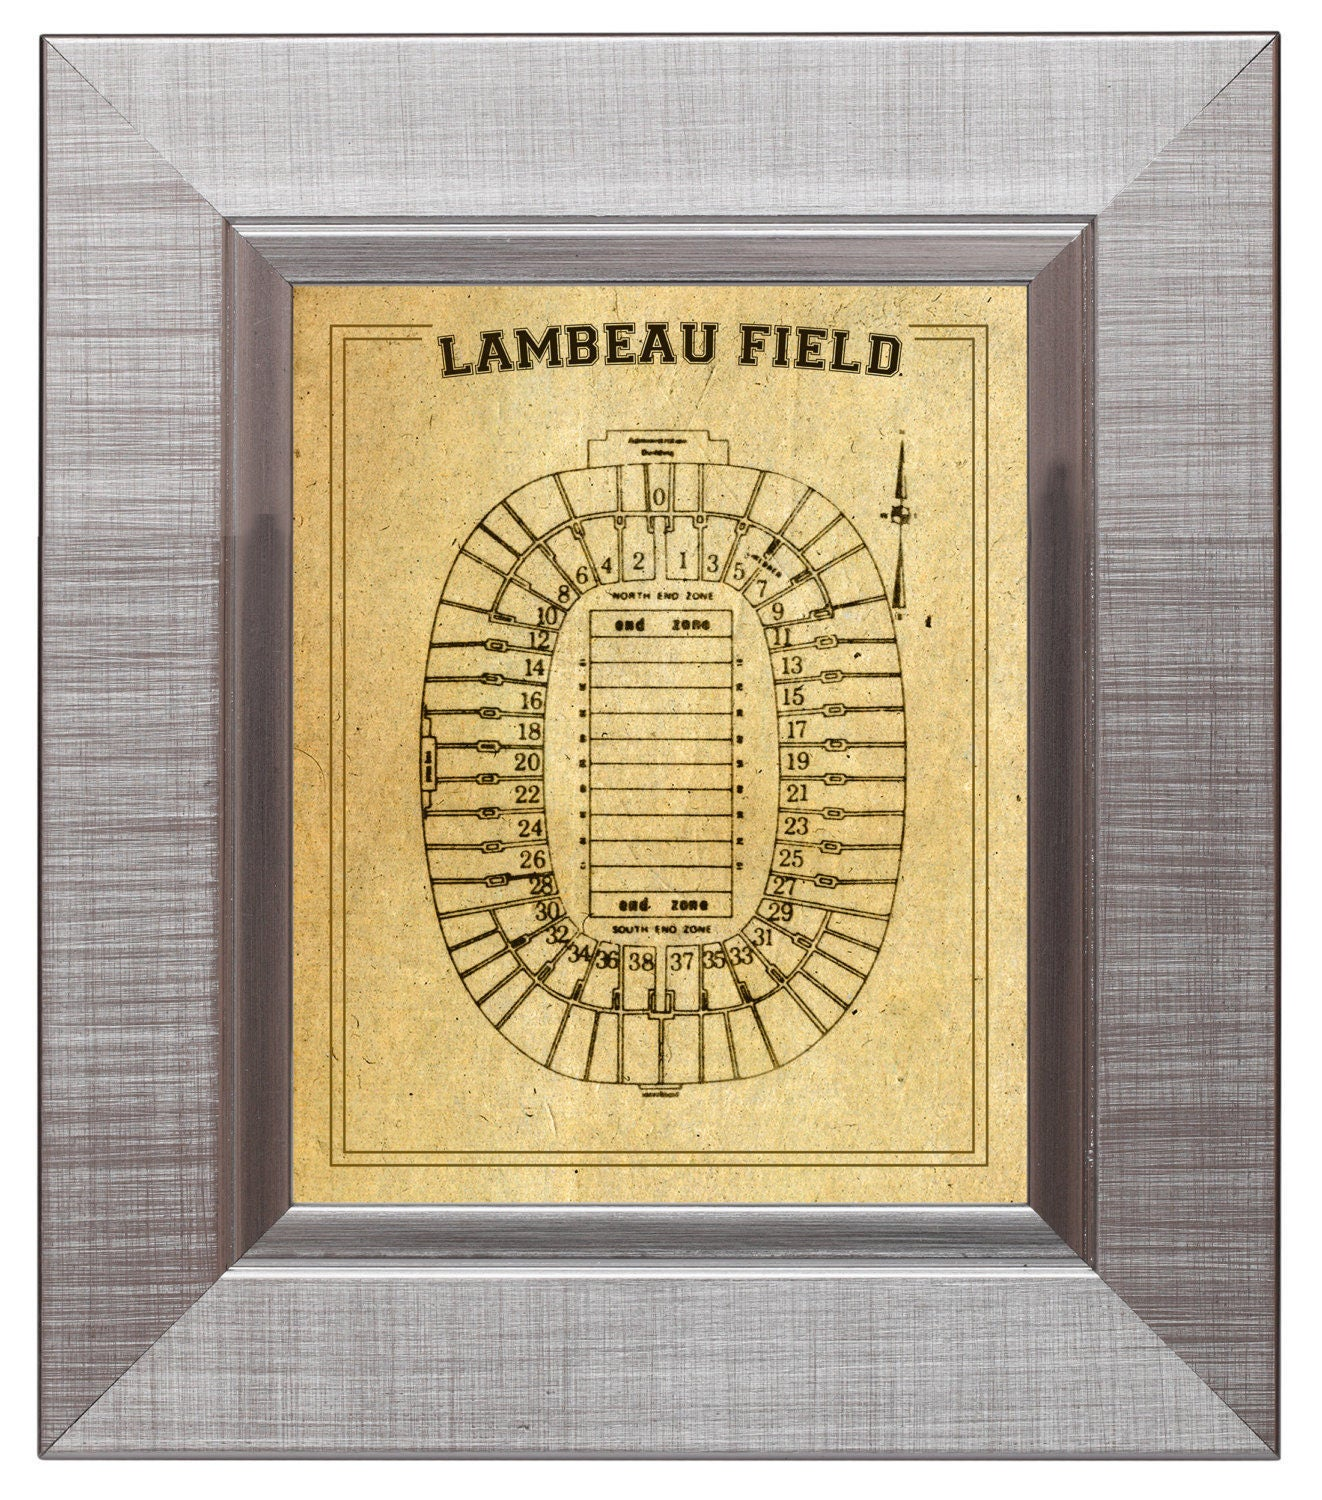 Print of vintage lambeau field seating chart seating chart for 12x15 calculator